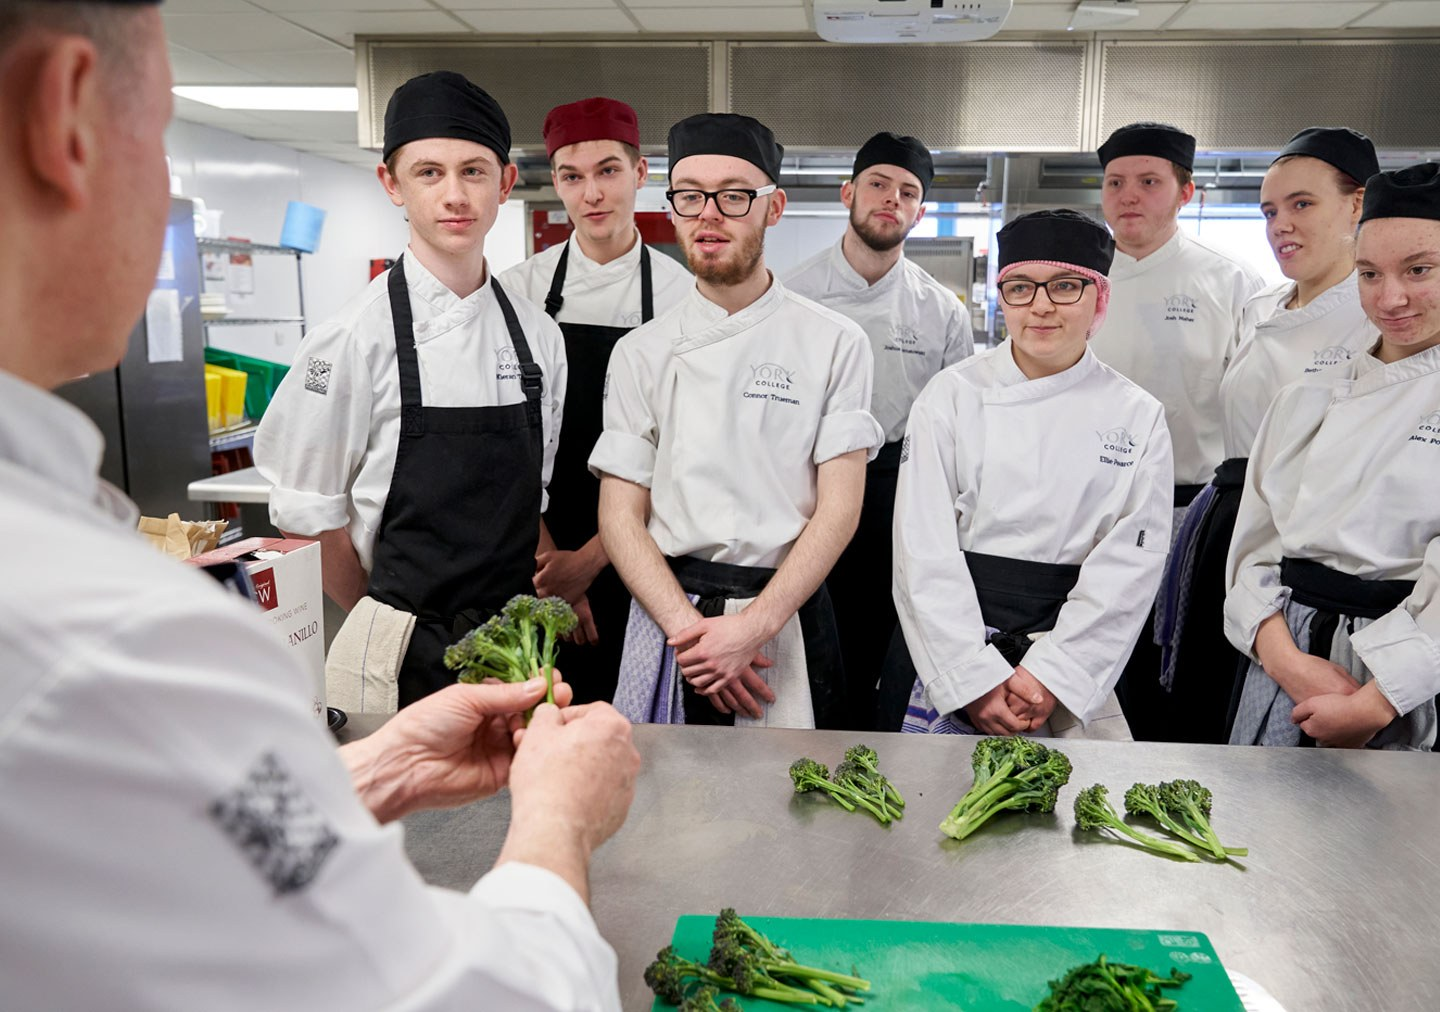 Professional Cookery students watching a demonstration by the tutor